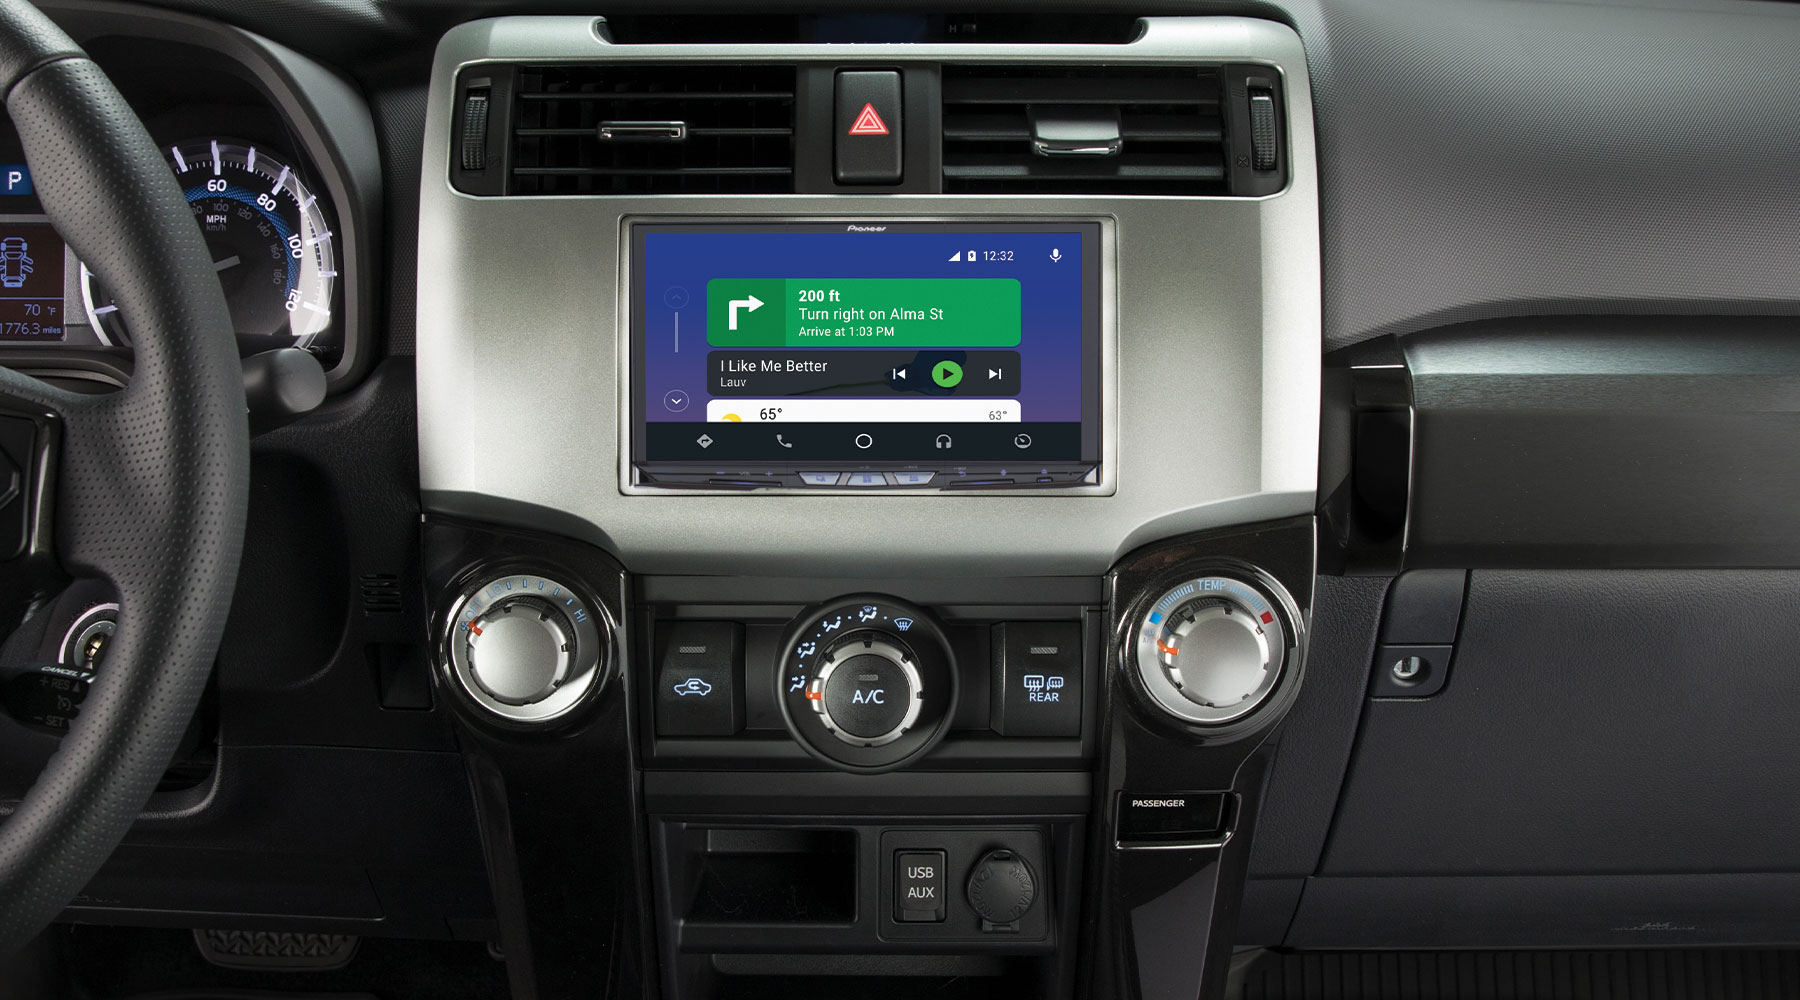 Upgrade and Unplug - Connected Car Life